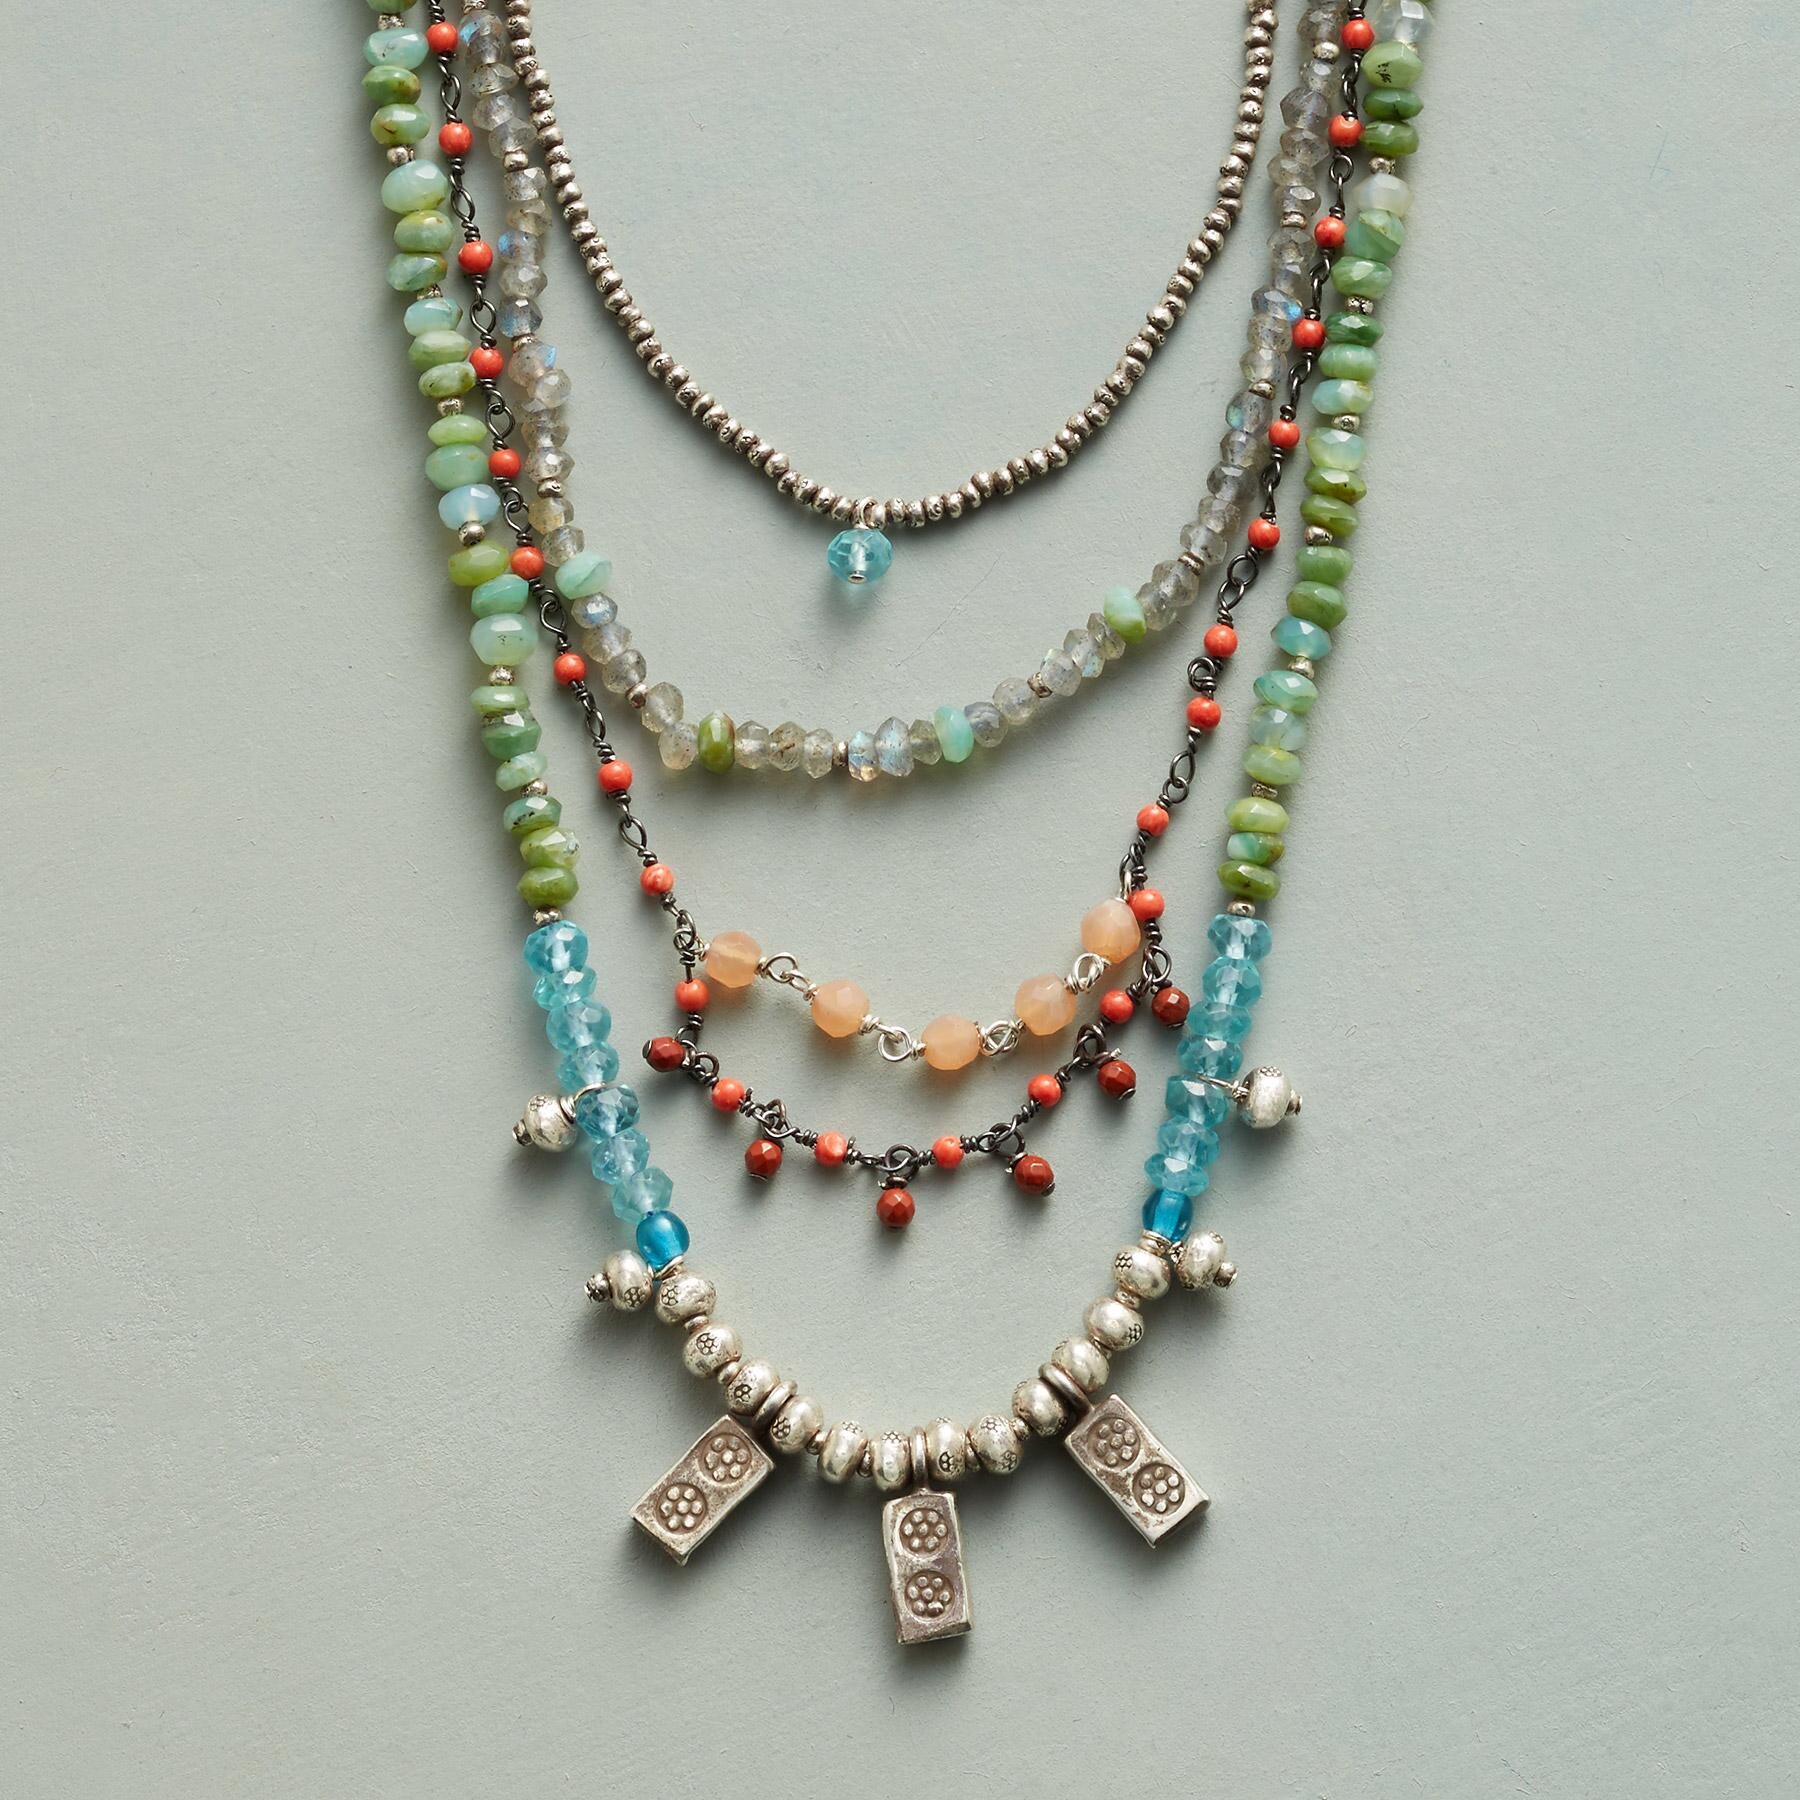 OFF THE COAST NECKLACE: View 1